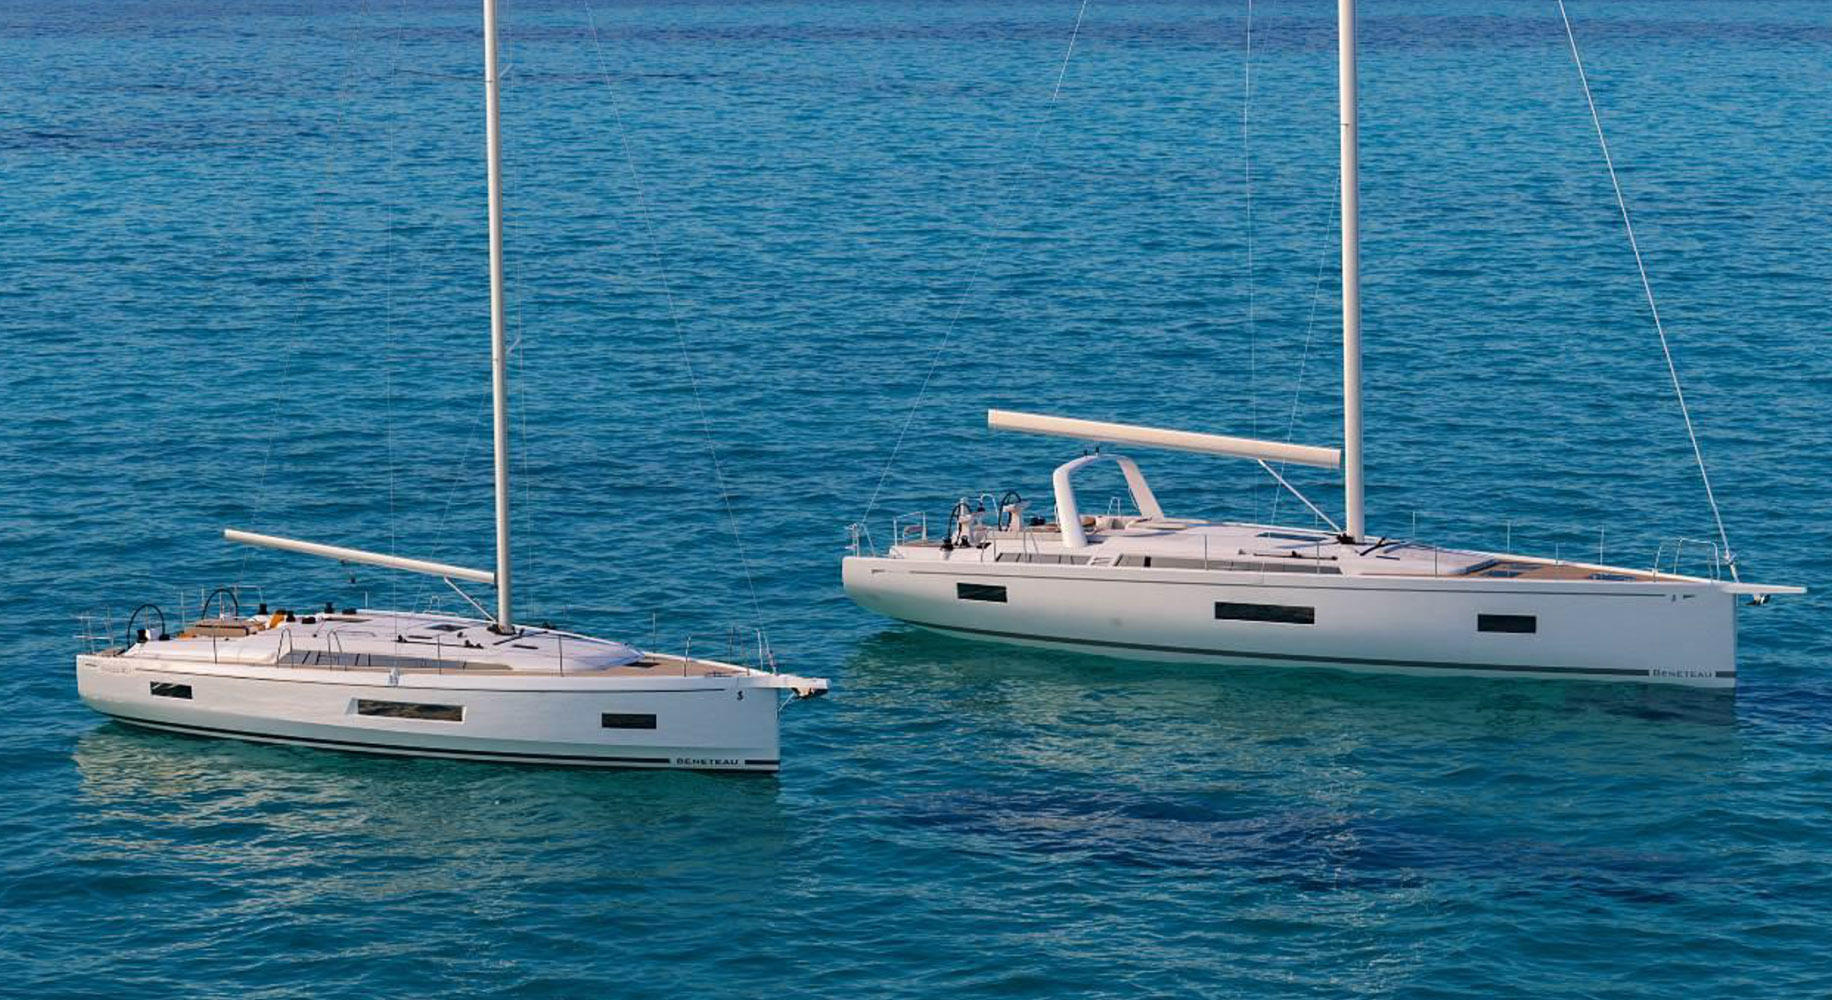 Oceanis 40.1 and Oceanis Yacht 54